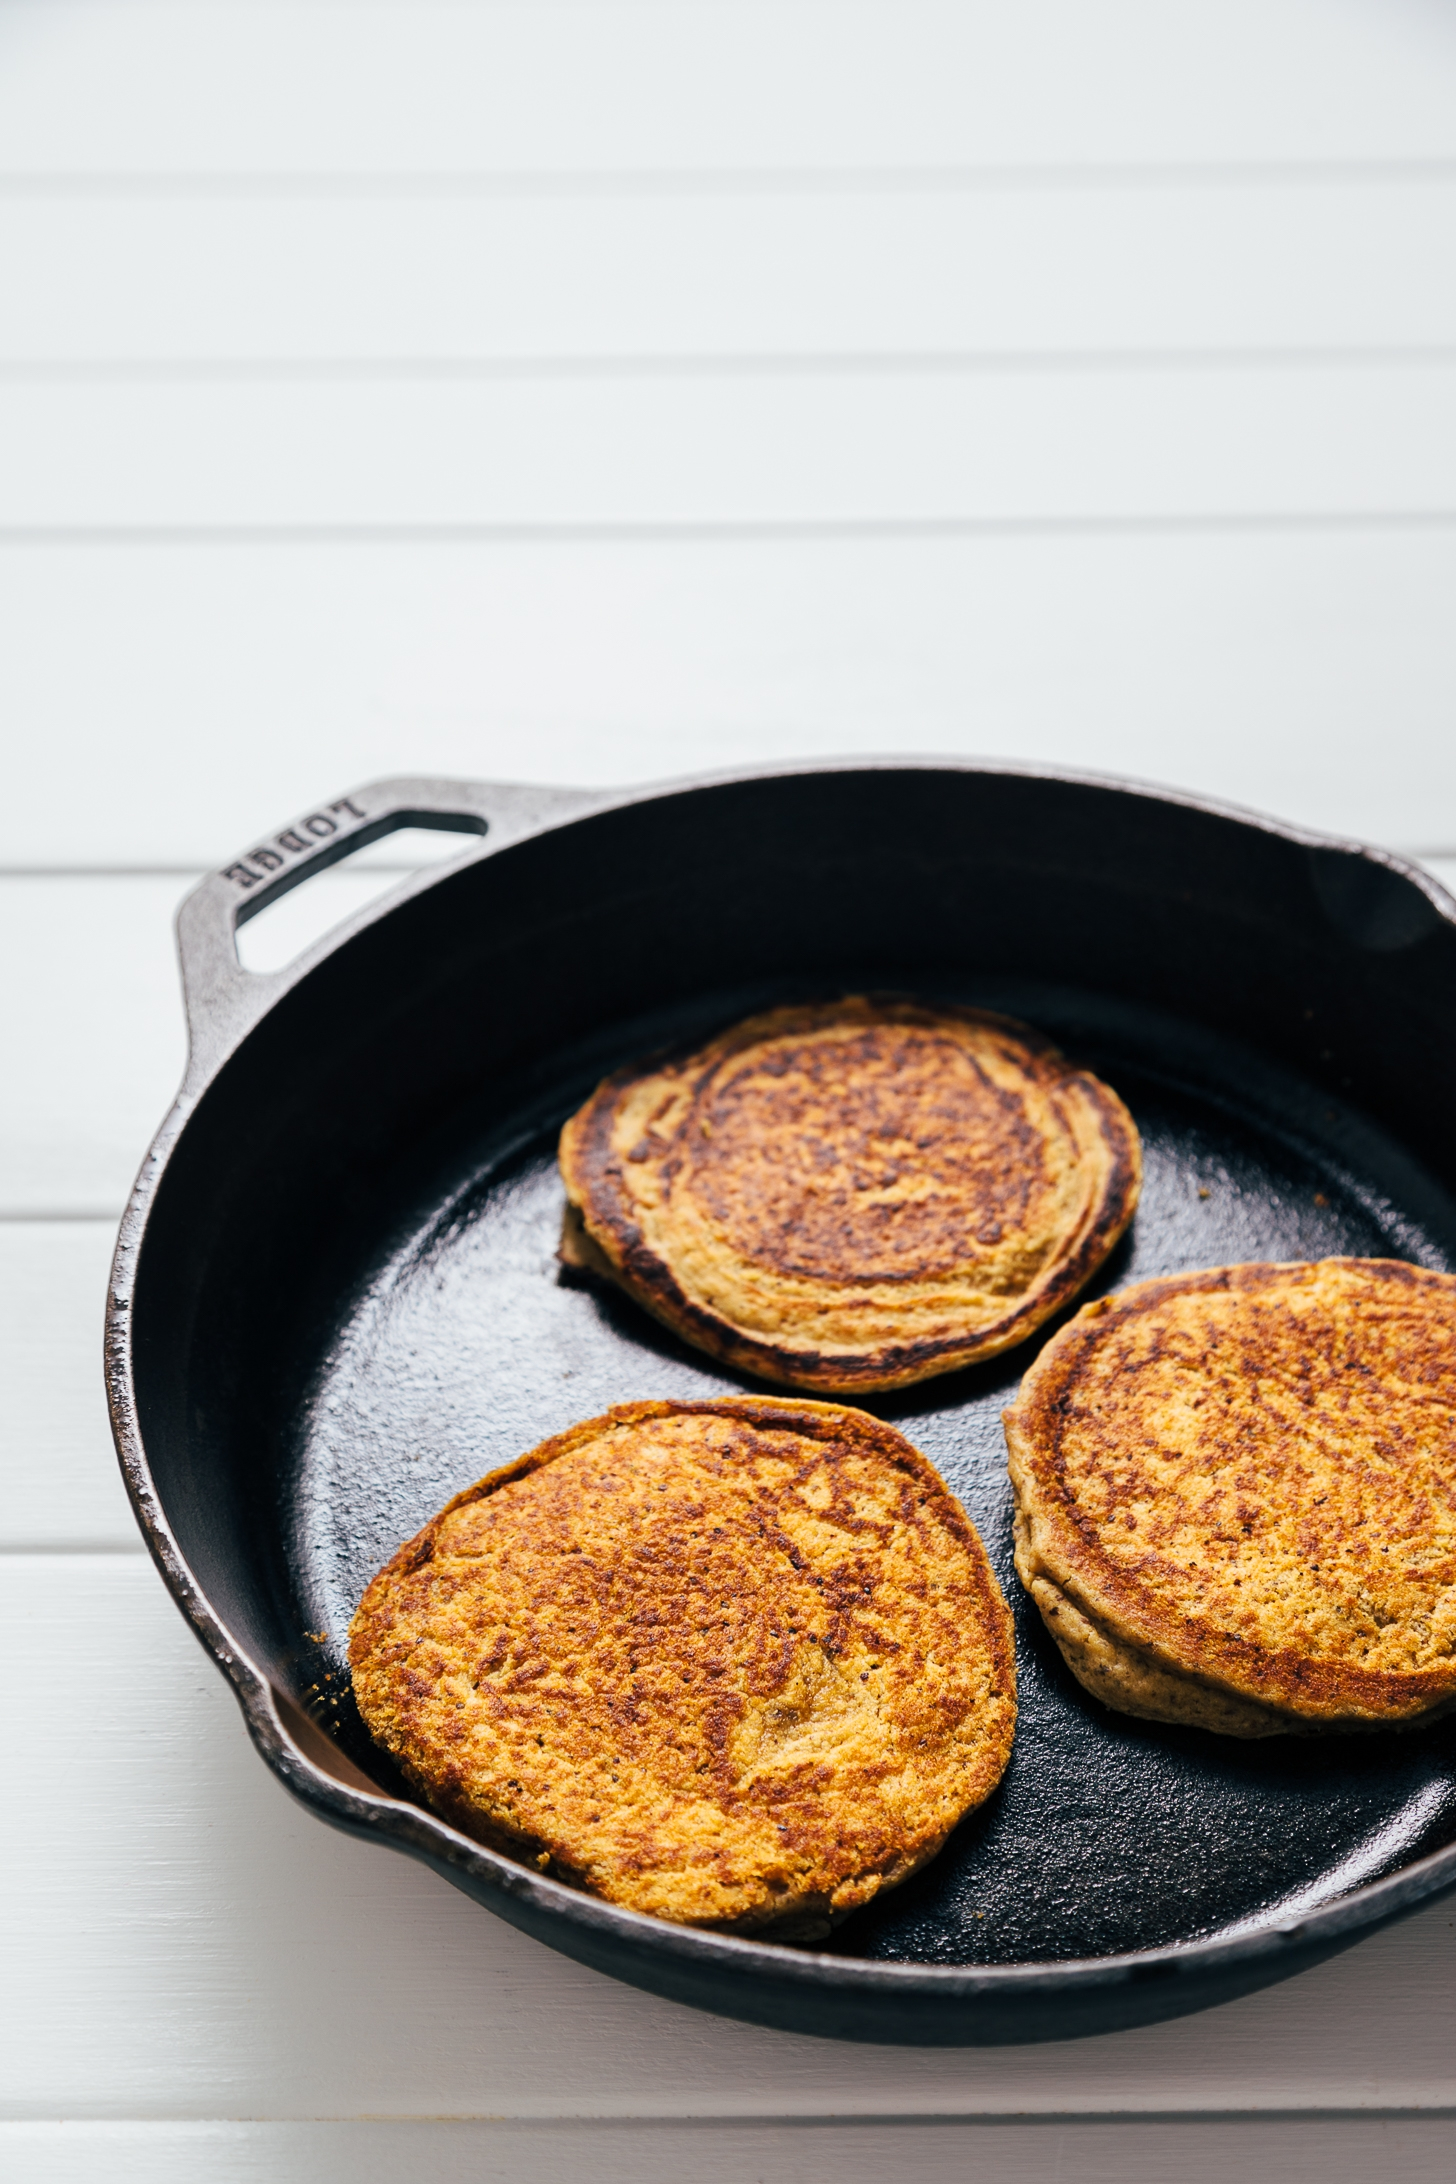 Cooking vegan Peanut Butter Protein Pancakes in a cast-iron skillet